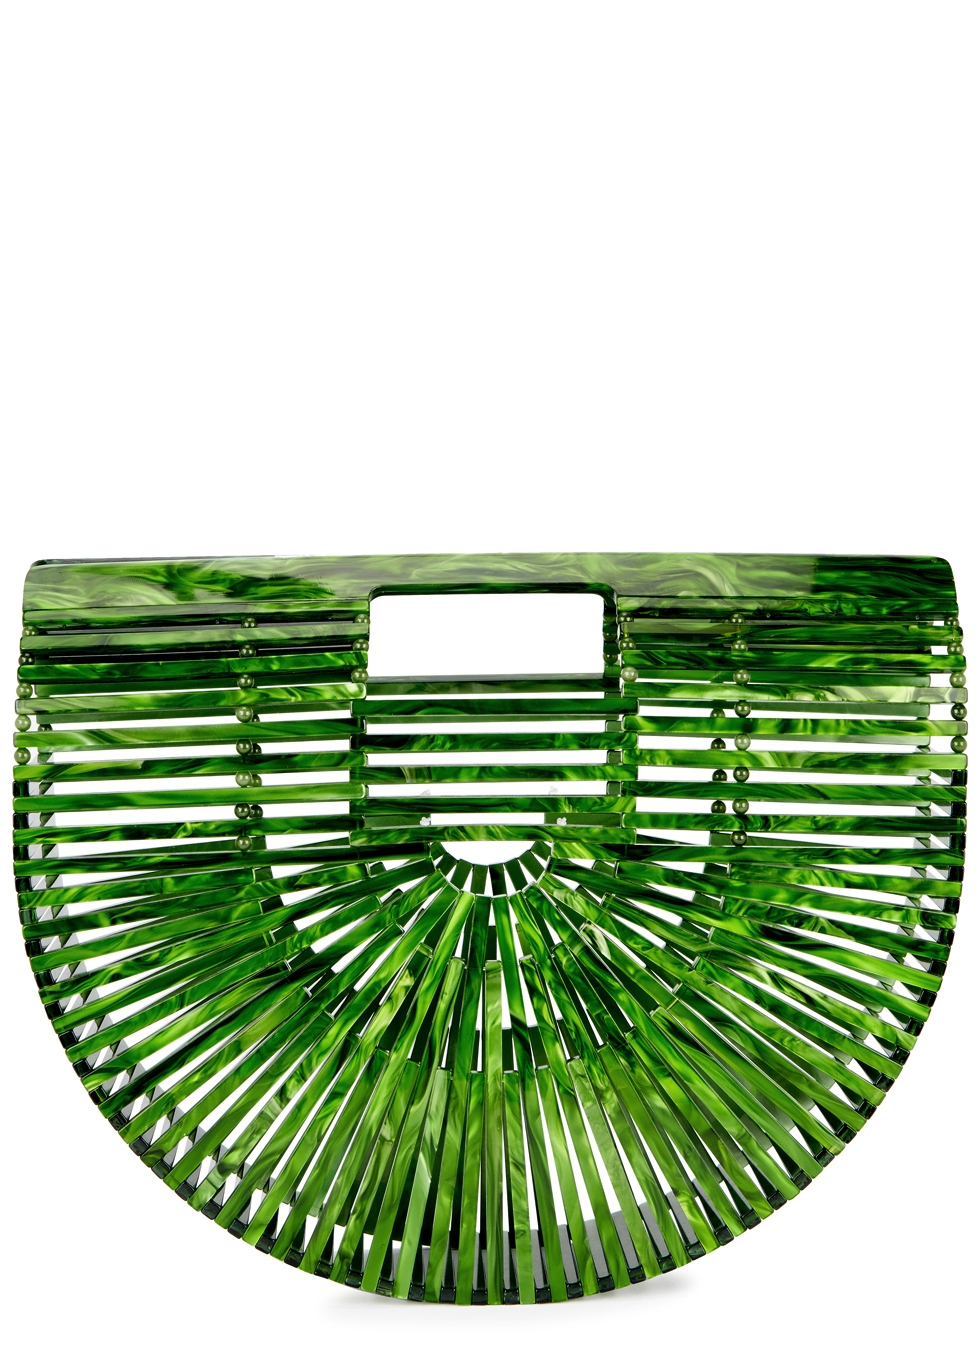 ARK SMALL GREEN CLUTCH